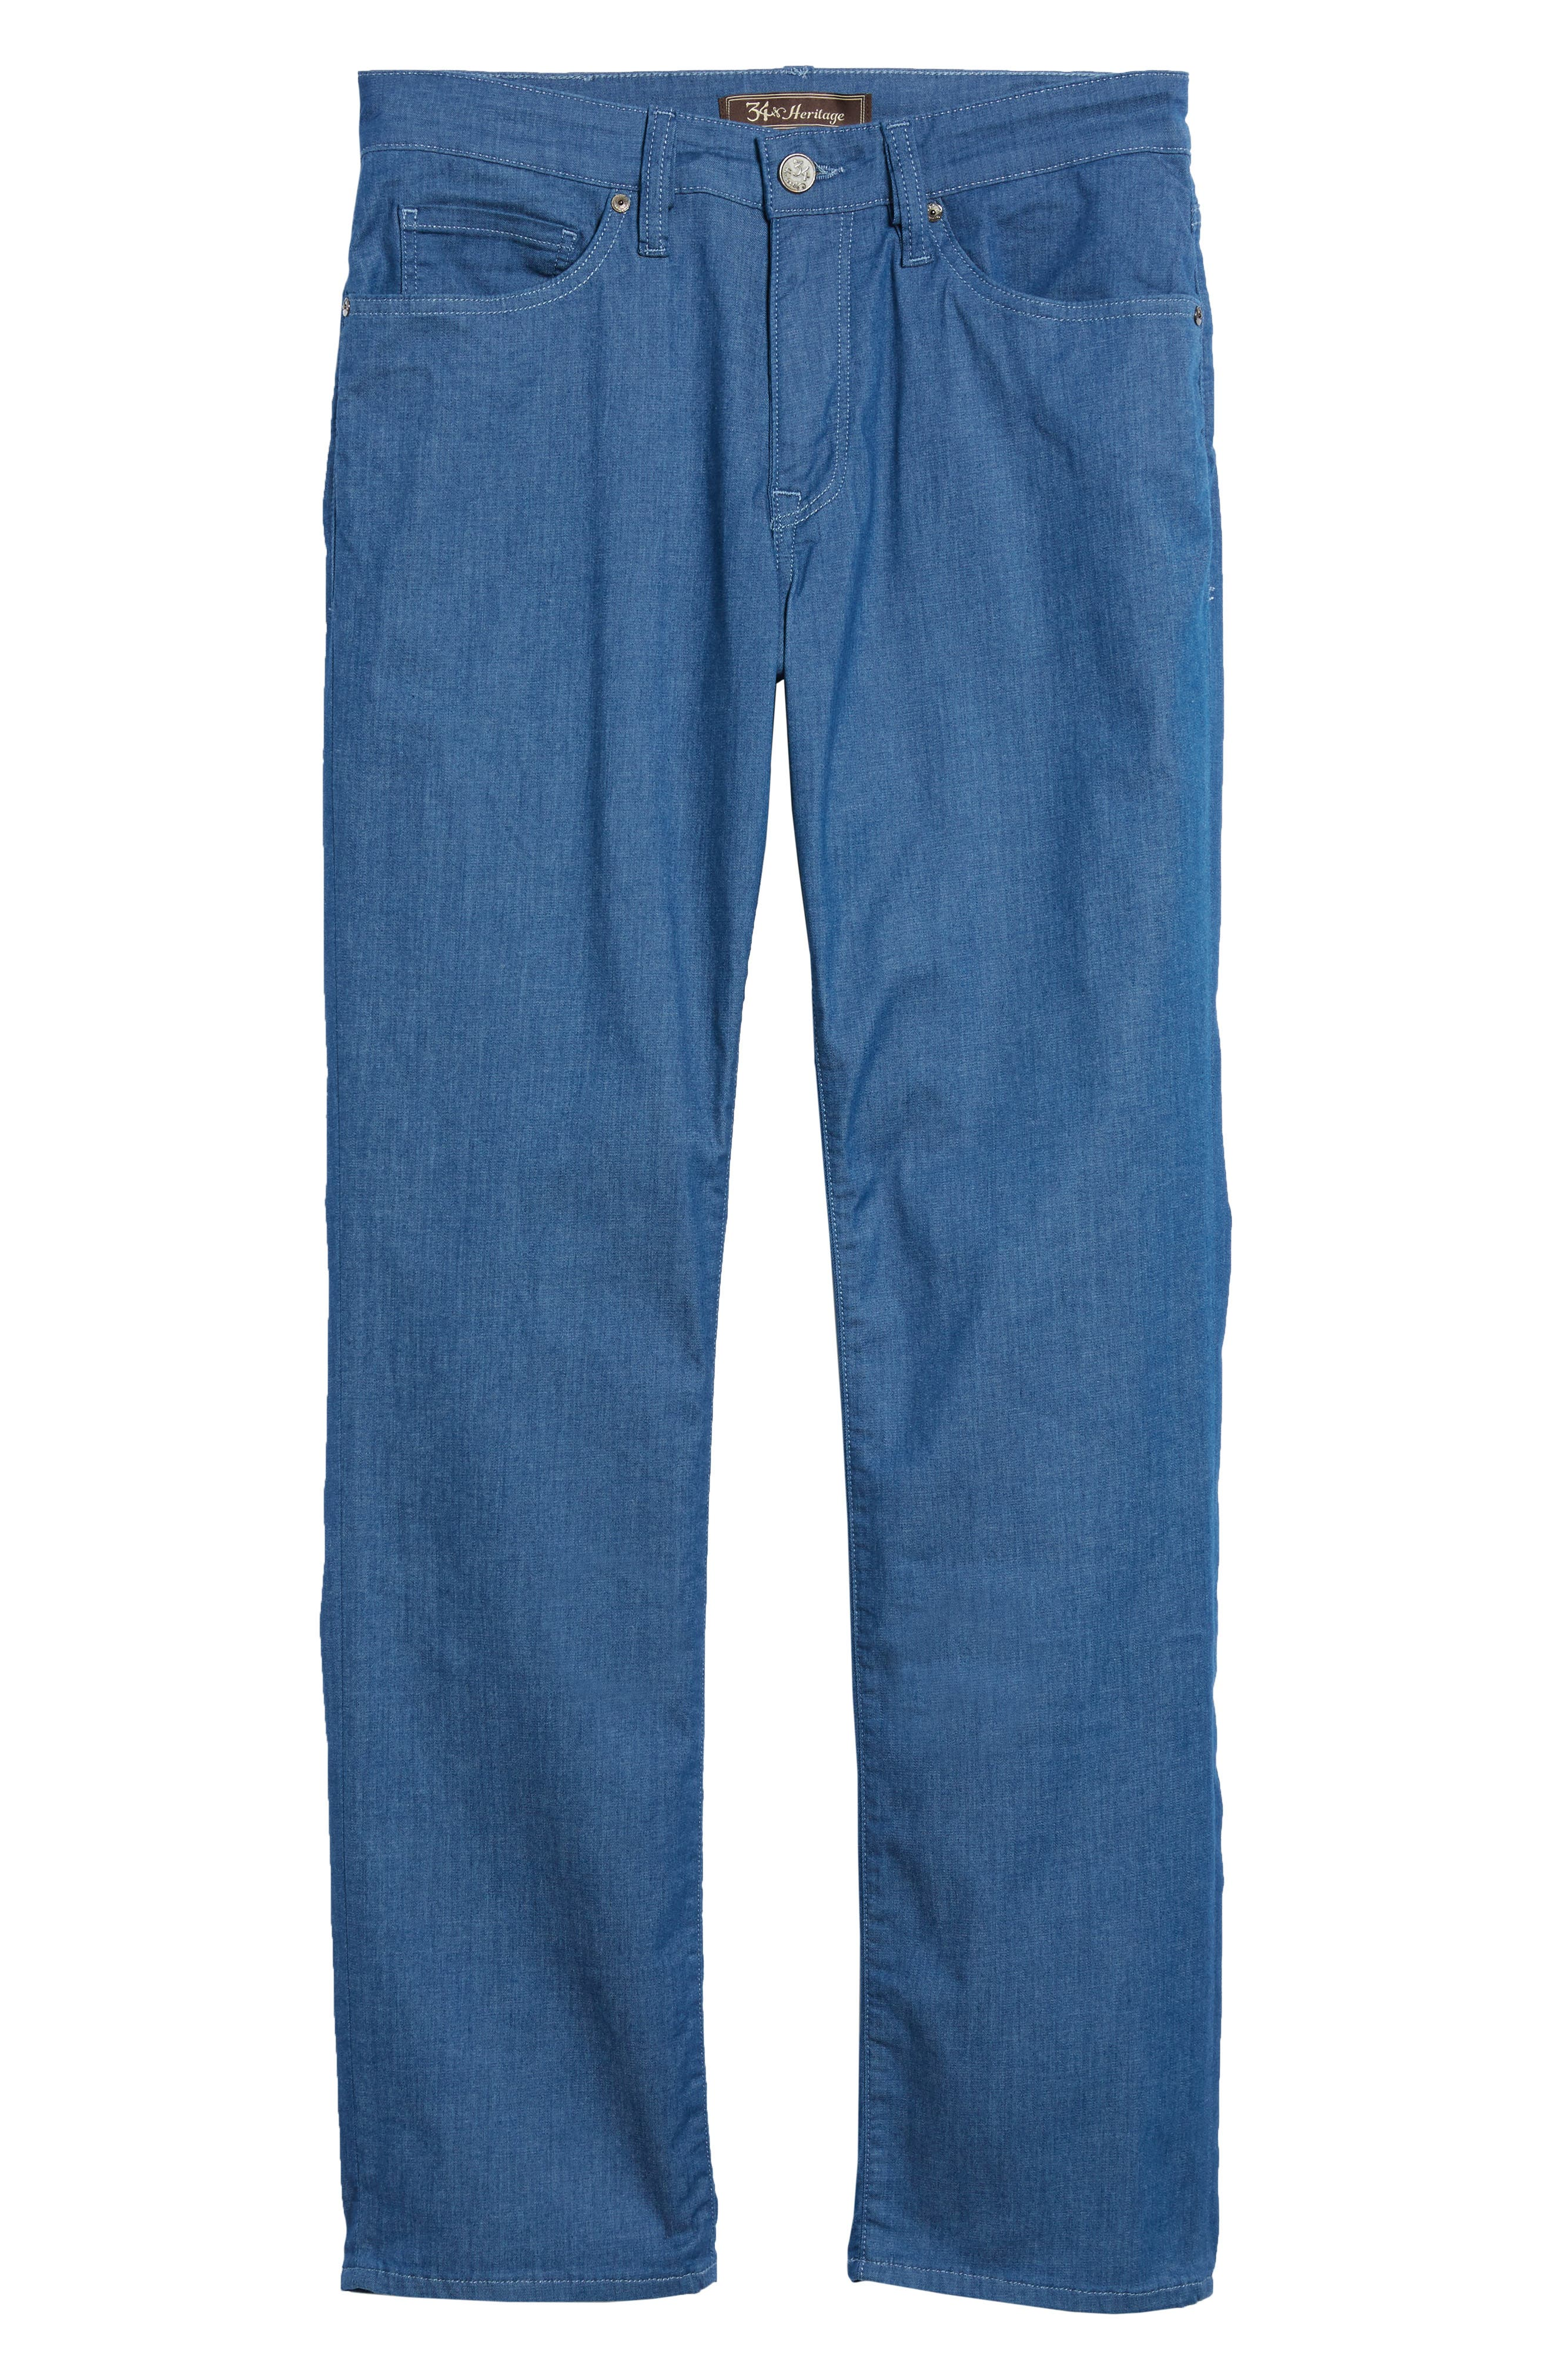 Alternate Image 6  - 34 Heritage Charisma Relaxed Fit Jeans (Mid Maui Denim)